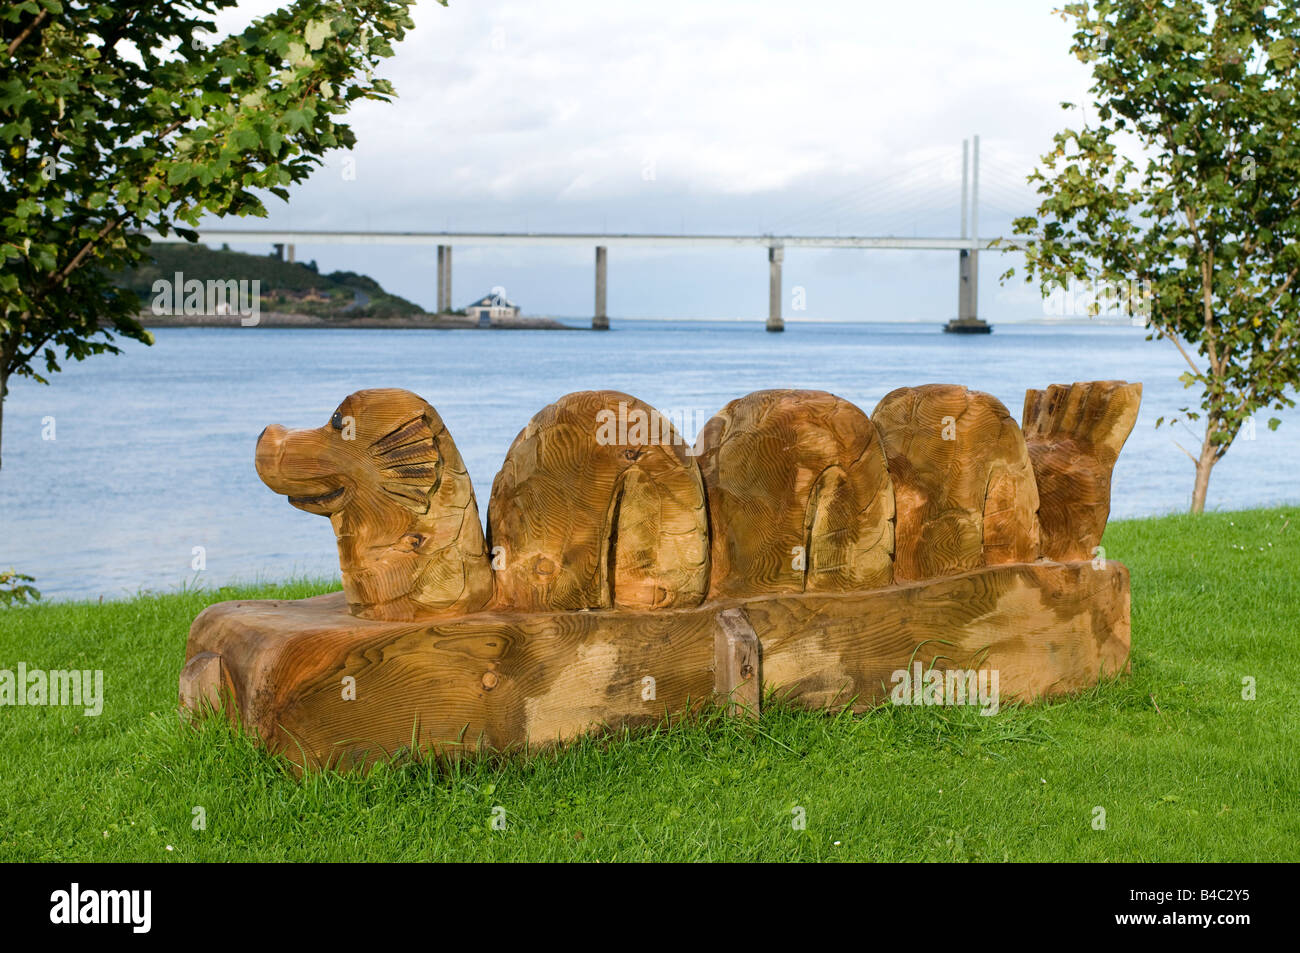 Wooden chainsaw sculpture of nessie loch ness monster at